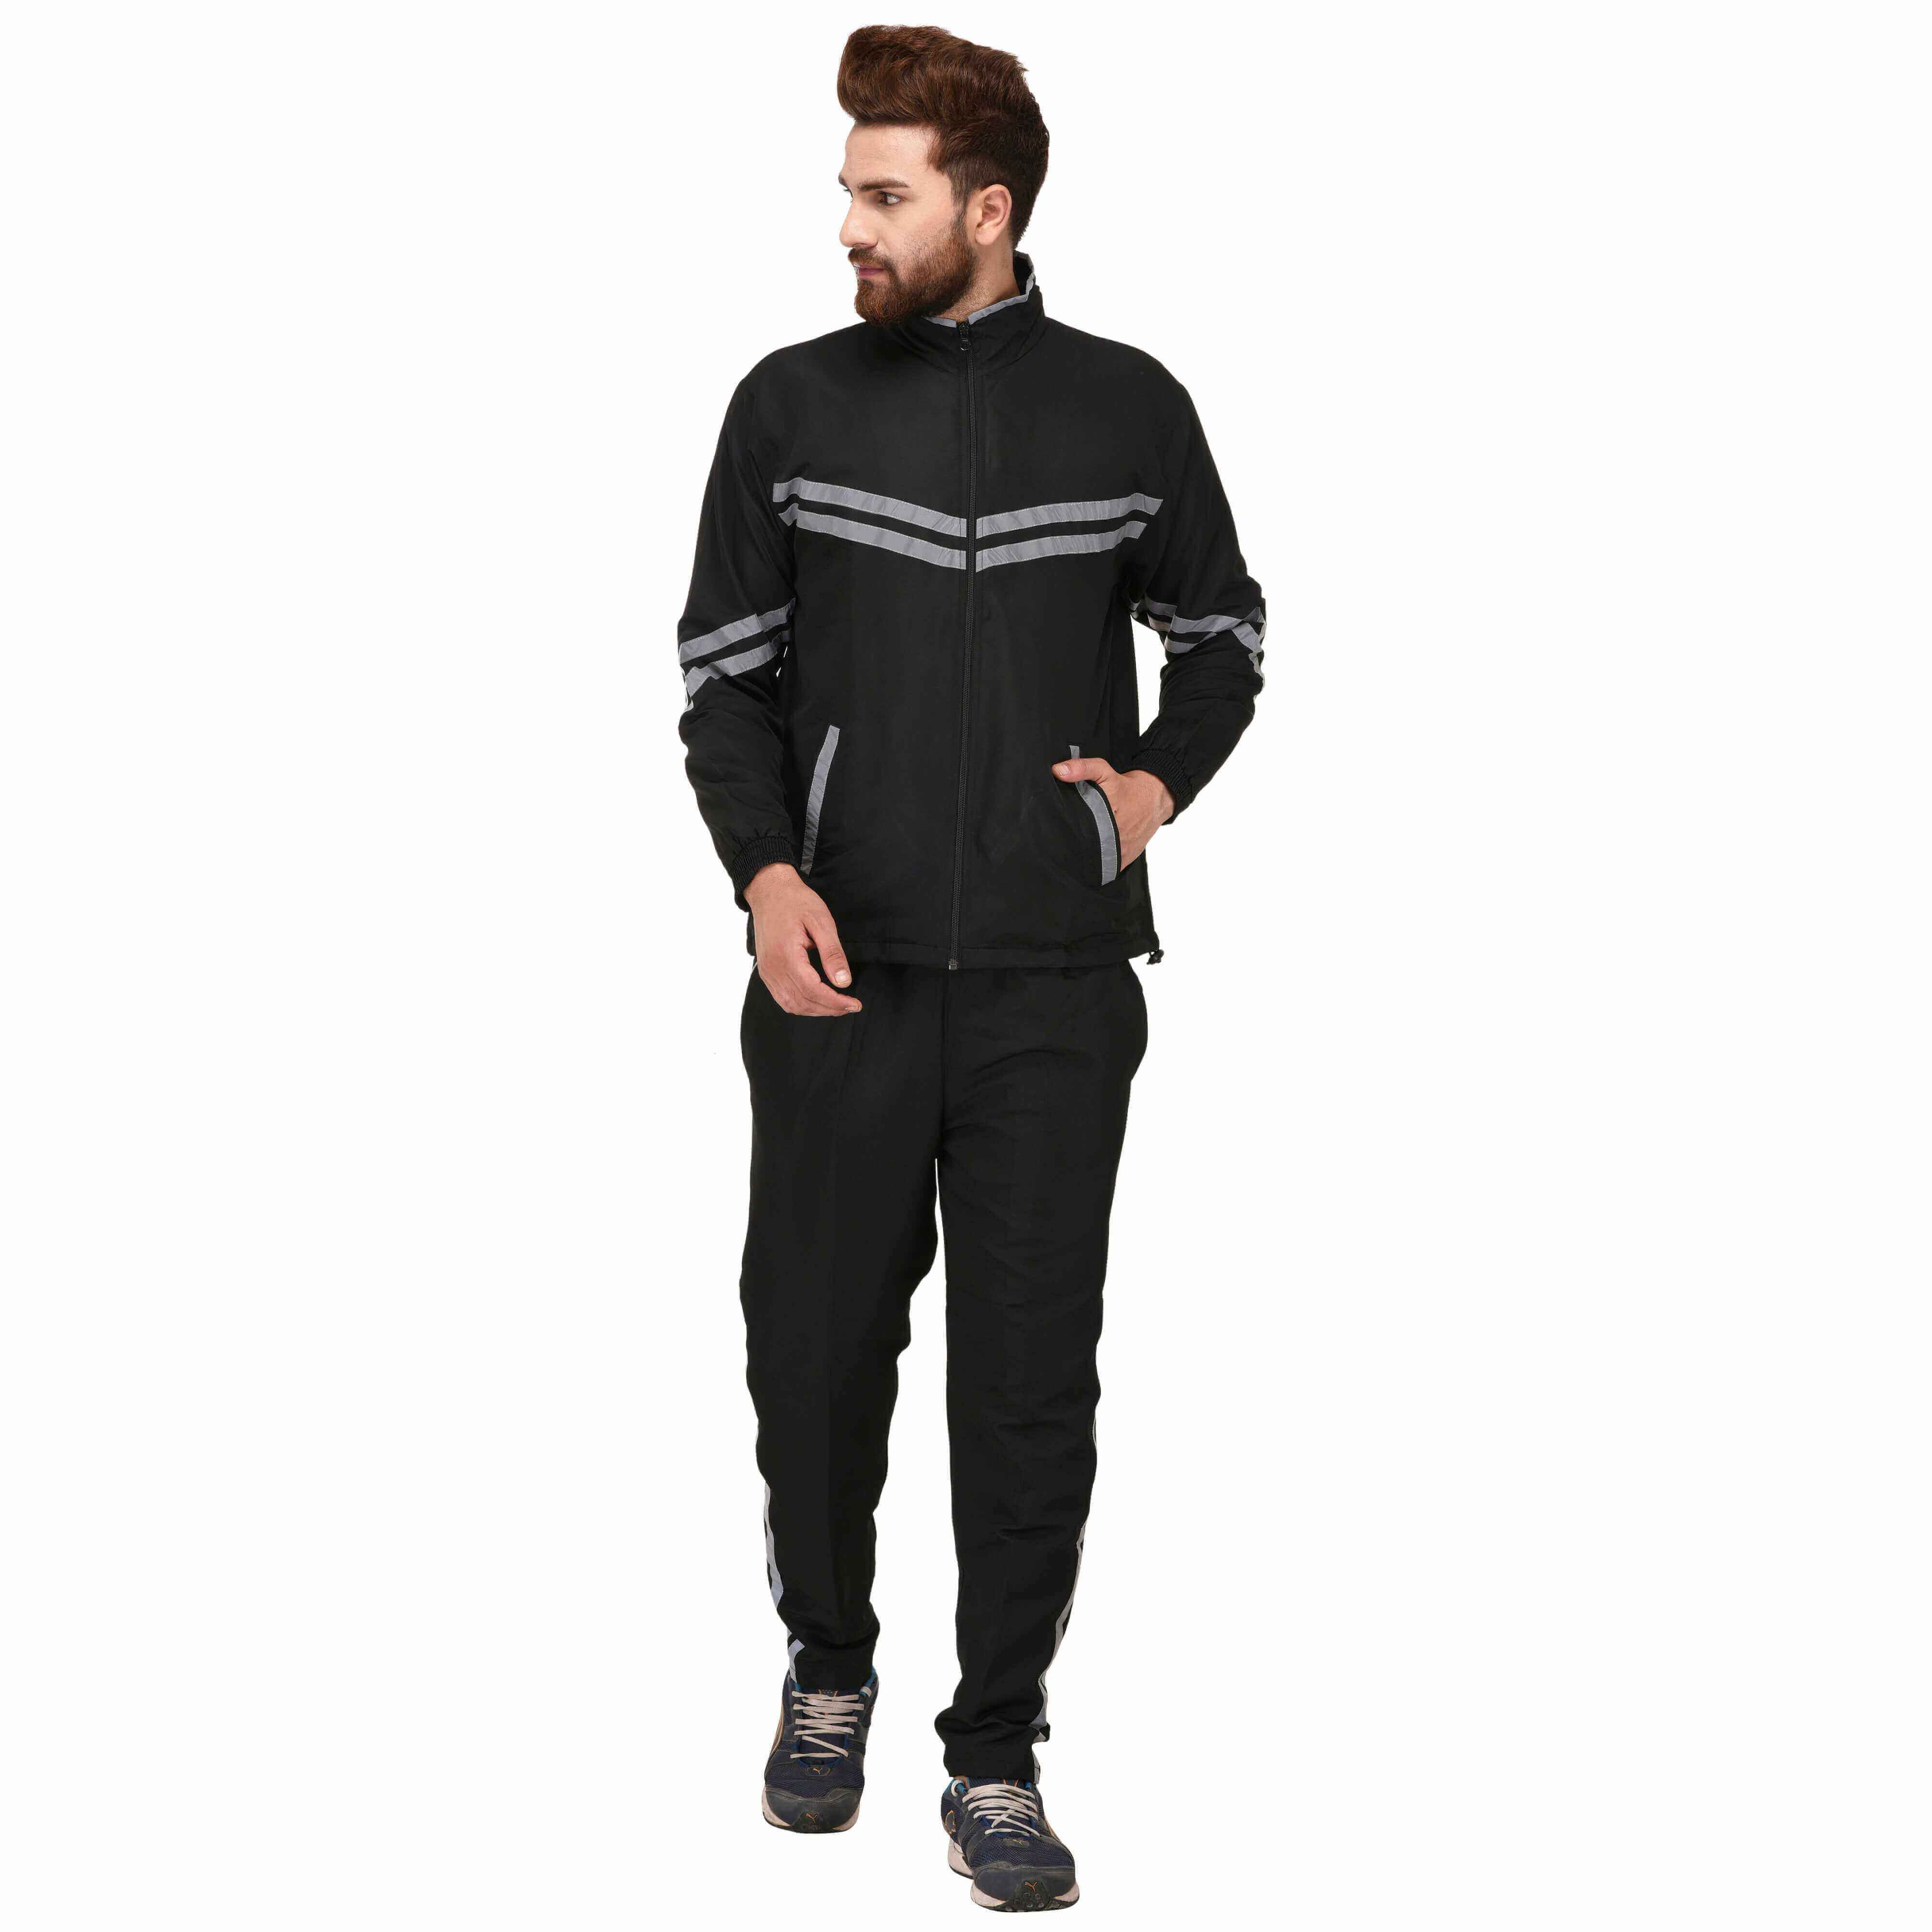 Grey Tracksuit Manufacturers in United-states-of-america